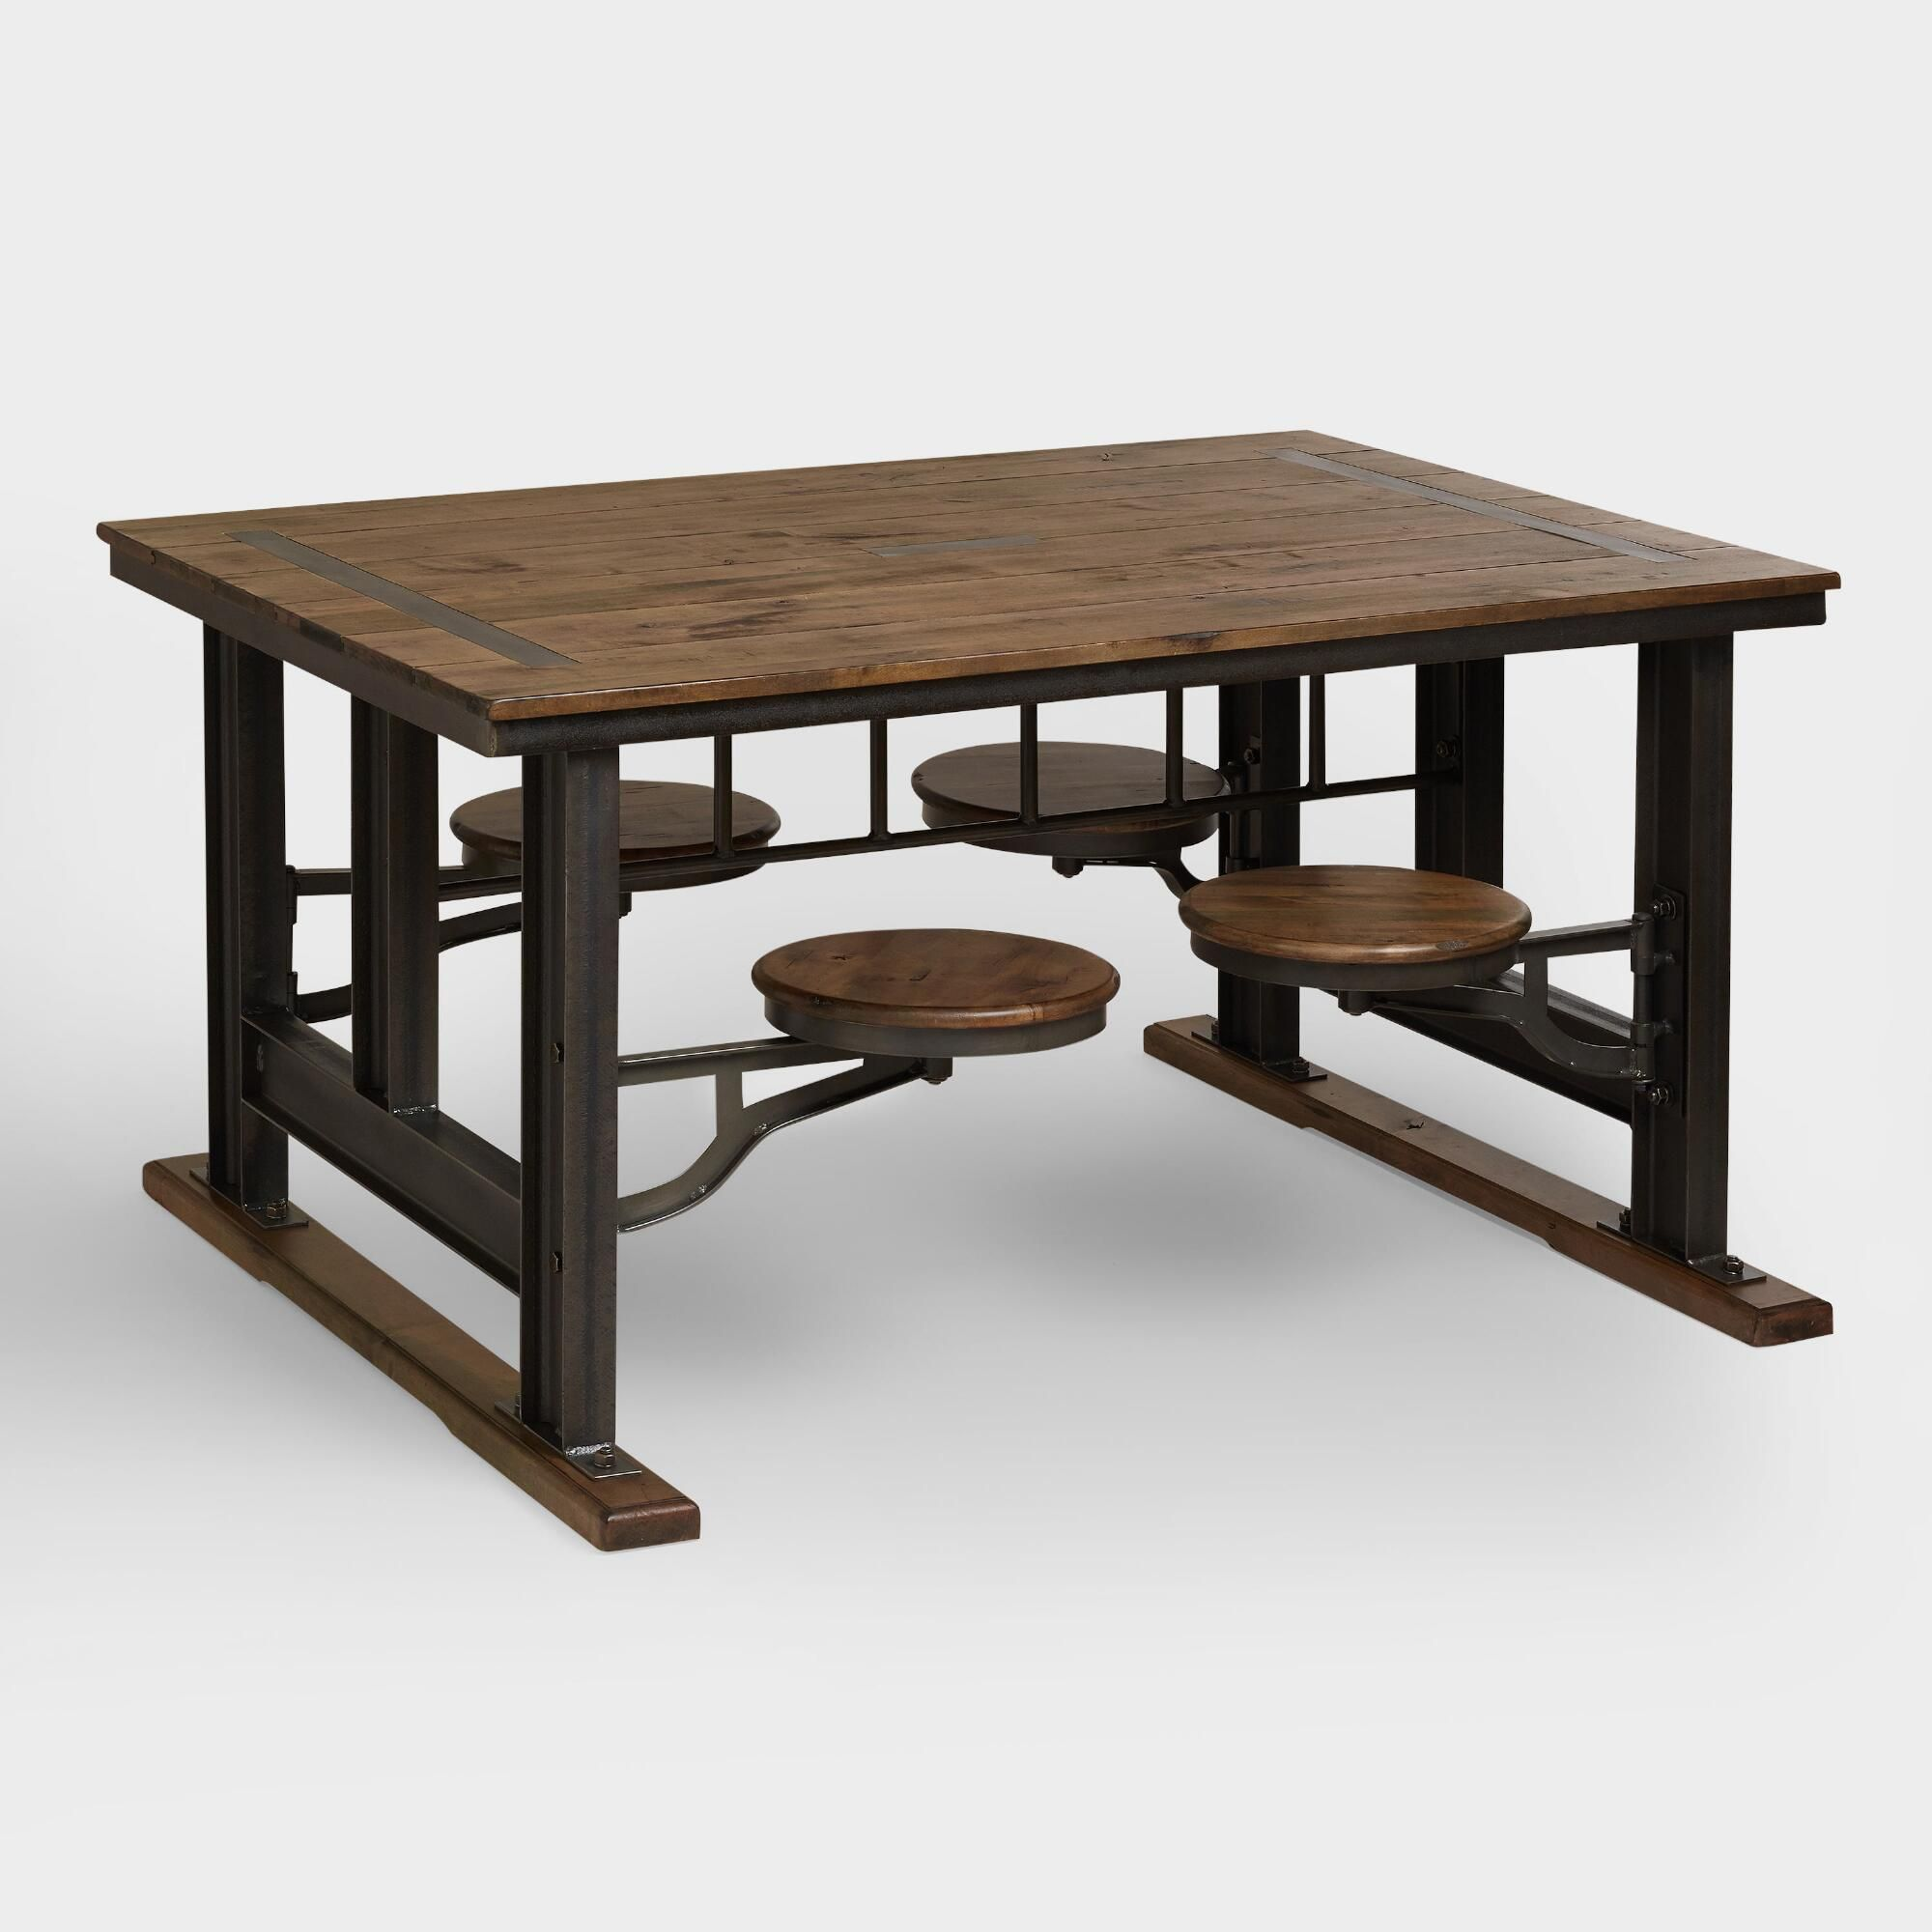 Galvin Cafeteria Table Metal Medium 61 Quot 72 Quot L By